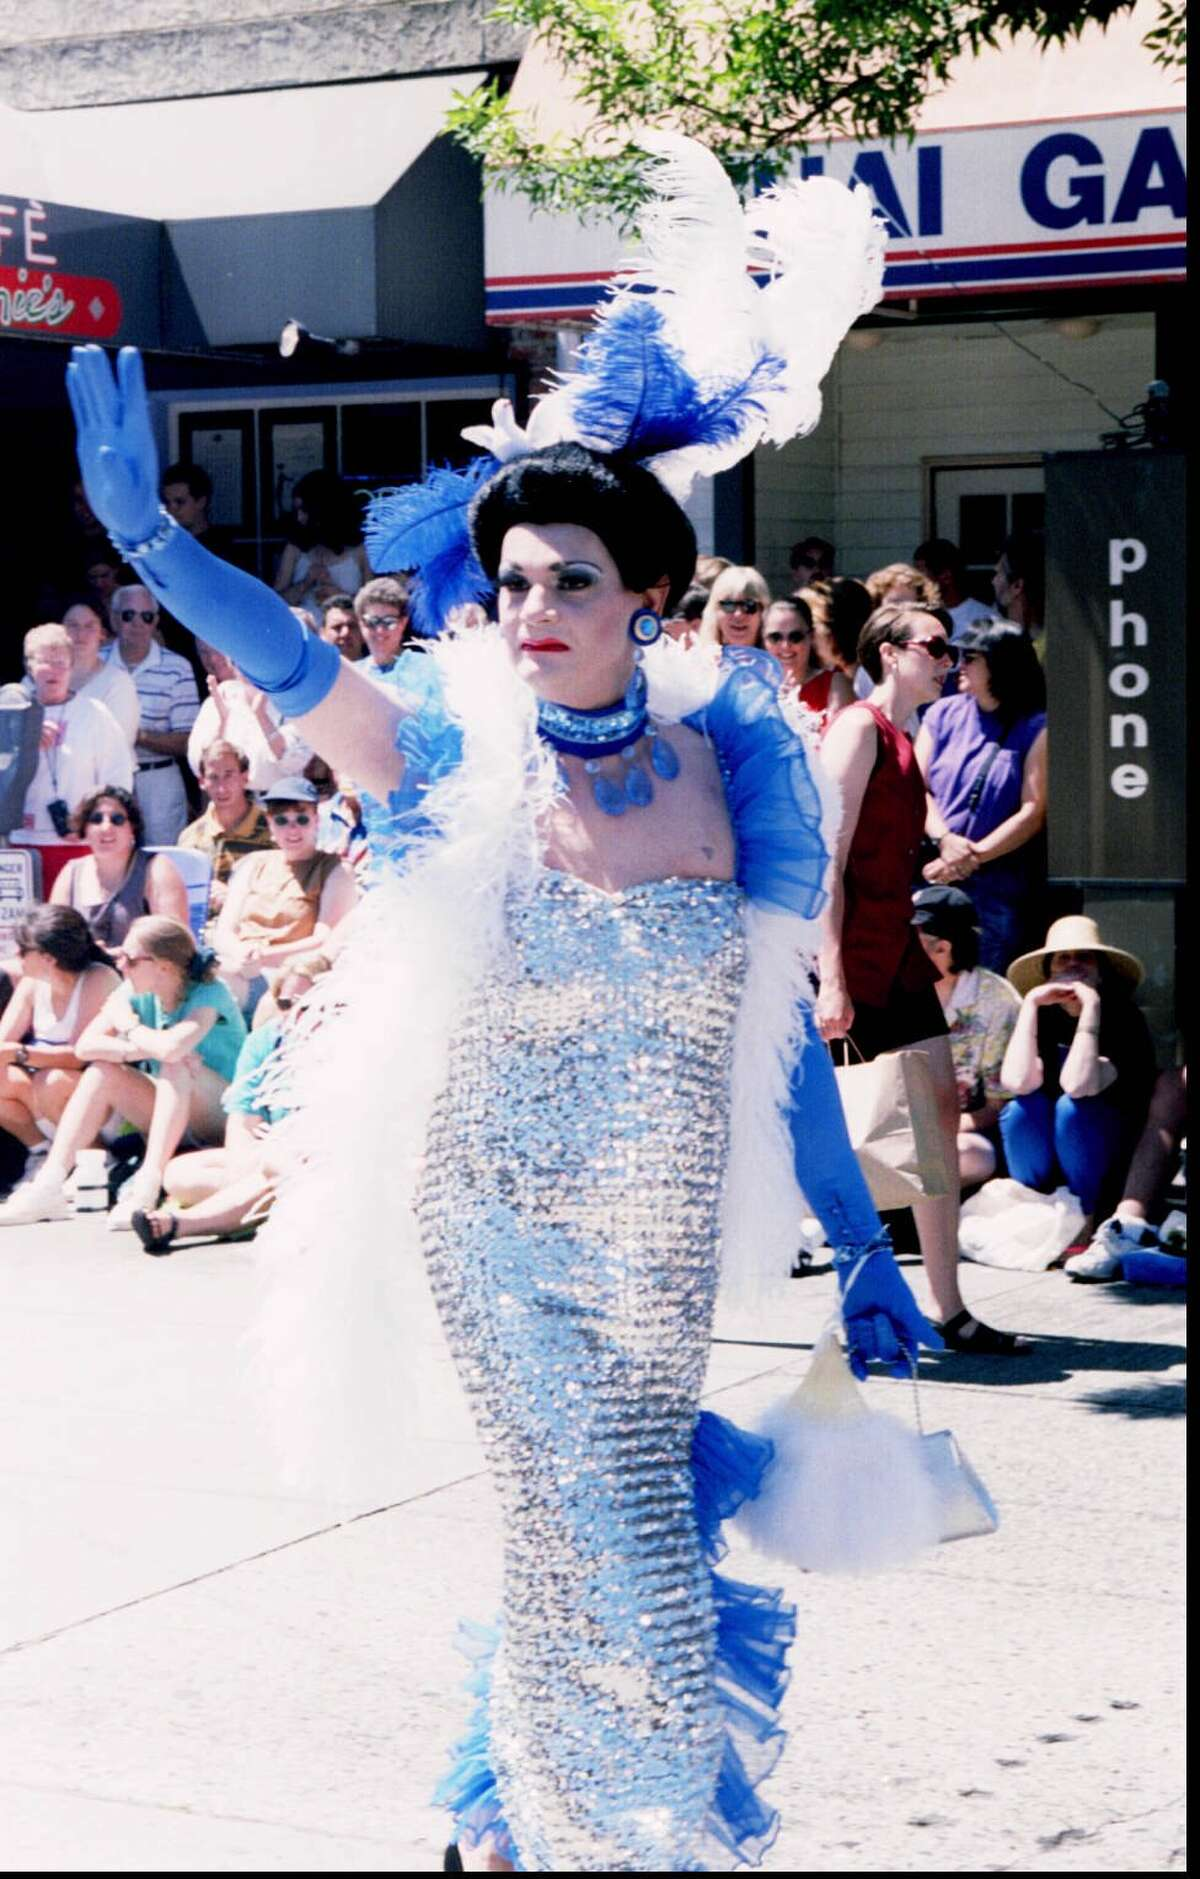 1995: A gay pride parade Participant waves to the crowd on Broadway. Photo by Loren Callahan.